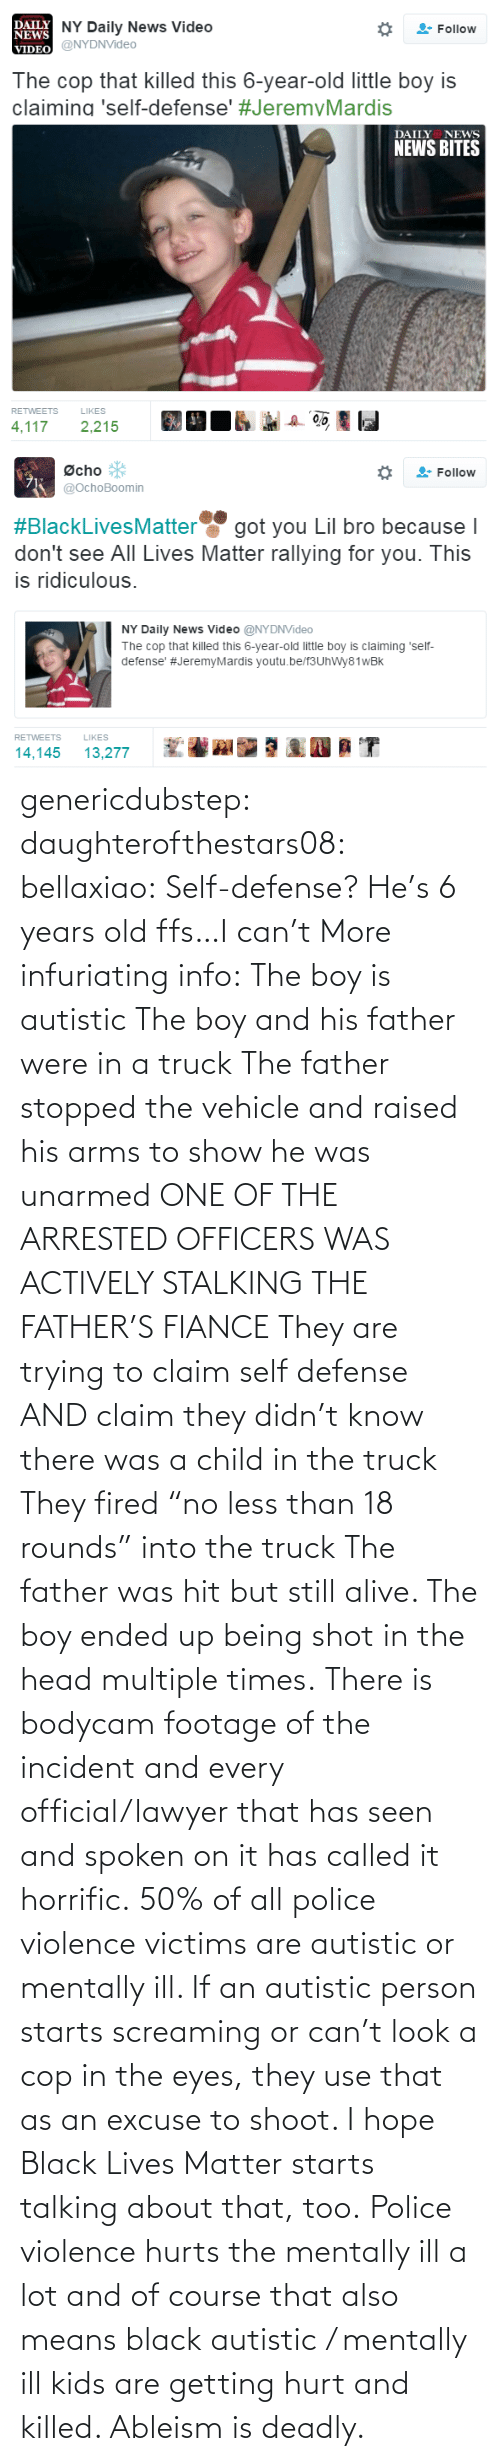 "of course: genericdubstep: daughterofthestars08:  bellaxiao:  Self-defense? He's 6 years old ffs…I can't  More infuriating info: The boy is autistic The boy and his father were in a truck The father stopped the vehicle and raised his arms to show he was unarmed ONE OF THE ARRESTED OFFICERS WAS ACTIVELY STALKING THE FATHER'S FIANCE They are trying to claim self defense AND claim they didn't know there was a child in the truck They fired ""no less than 18 rounds"" into the truck The father was hit but still alive. The boy ended up being shot in the head multiple times. There is bodycam footage of the incident and every official/lawyer that has seen and spoken on it has called it horrific.  50% of all police violence victims are autistic or mentally ill. If an autistic person starts screaming or can't look a cop in the eyes, they use that as an excuse to shoot. I hope Black Lives Matter starts talking about that, too. Police violence hurts the mentally ill a lot and of course that also means black autistic / mentally ill kids are getting hurt and killed. Ableism is deadly."